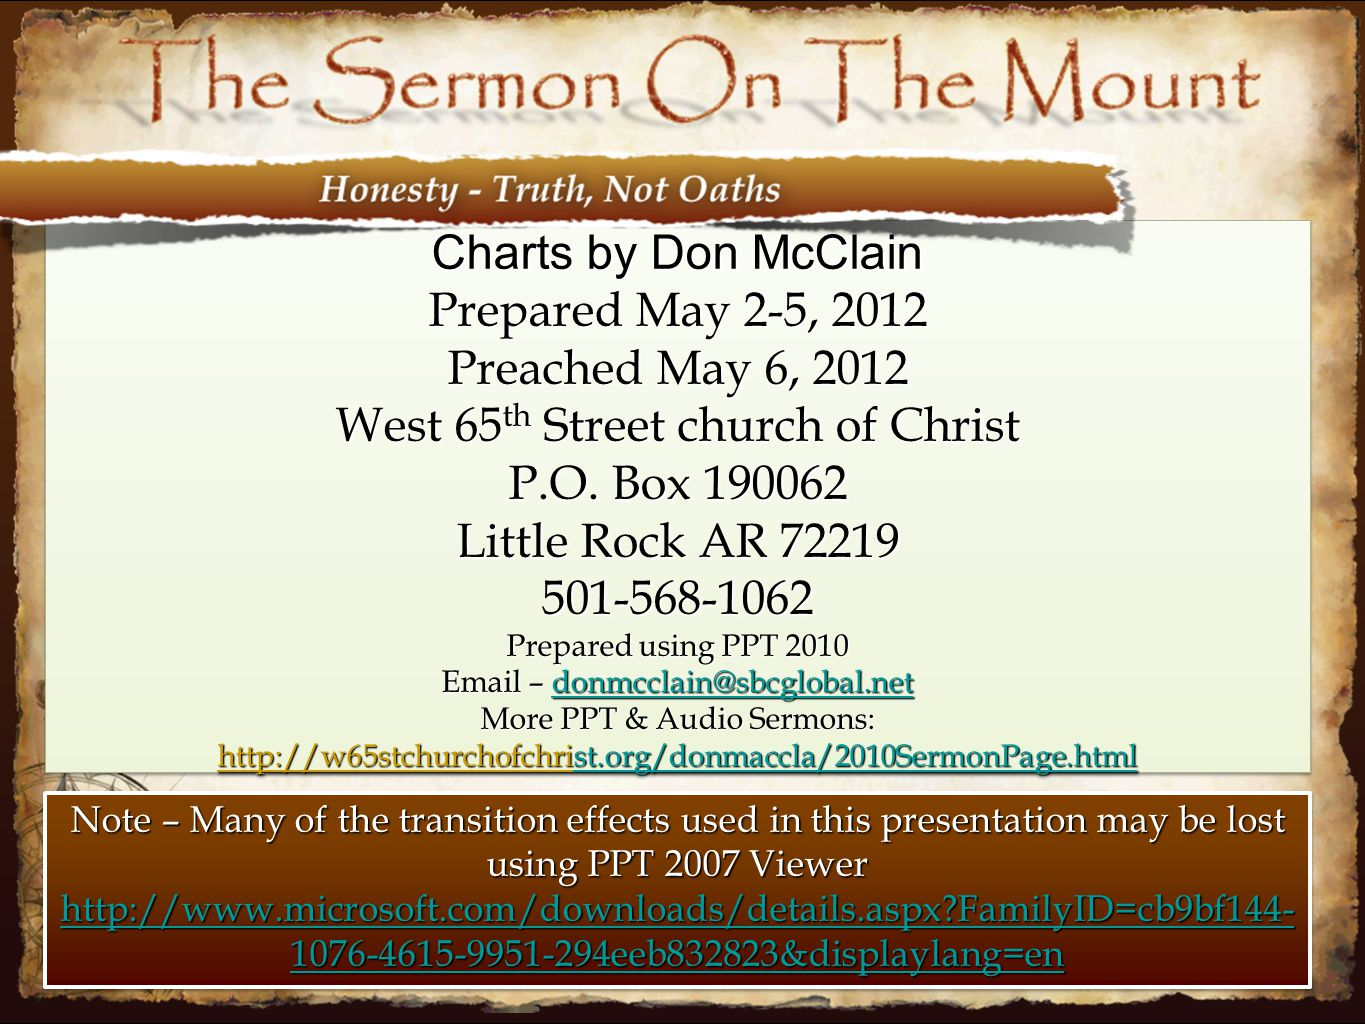 Charts by Don McClain Prepared May 2-5, 2012 Preached May 6, 2012 West 65 th Street church of Christ P.O. Box 190062 Little Rock AR 72219 501-568-1062